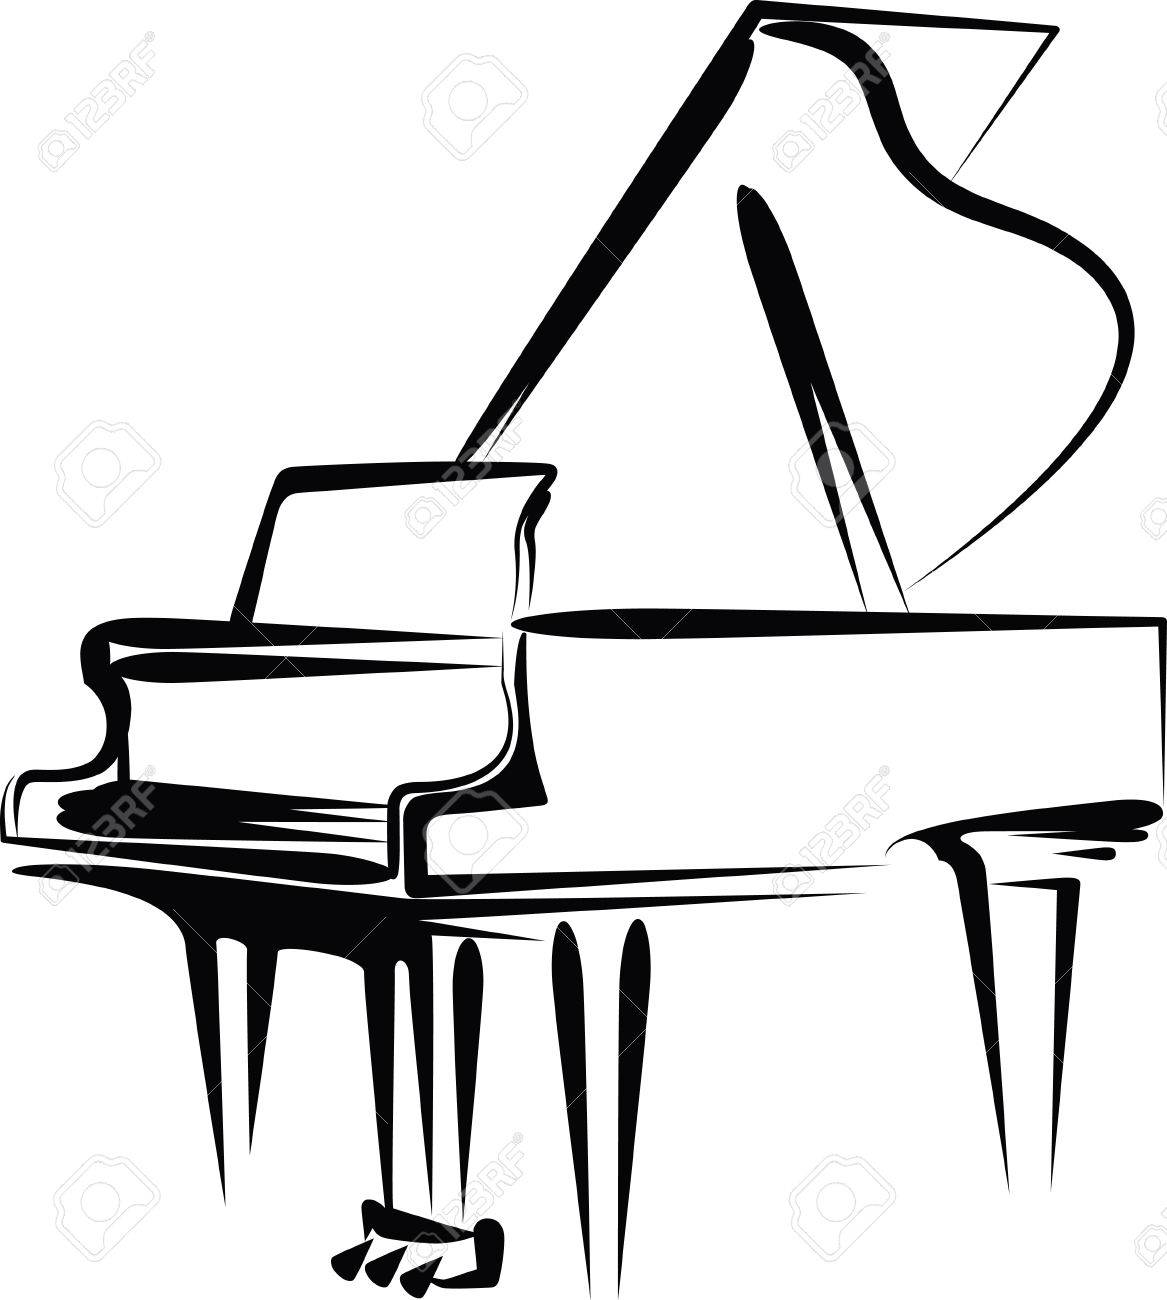 piano key clipart